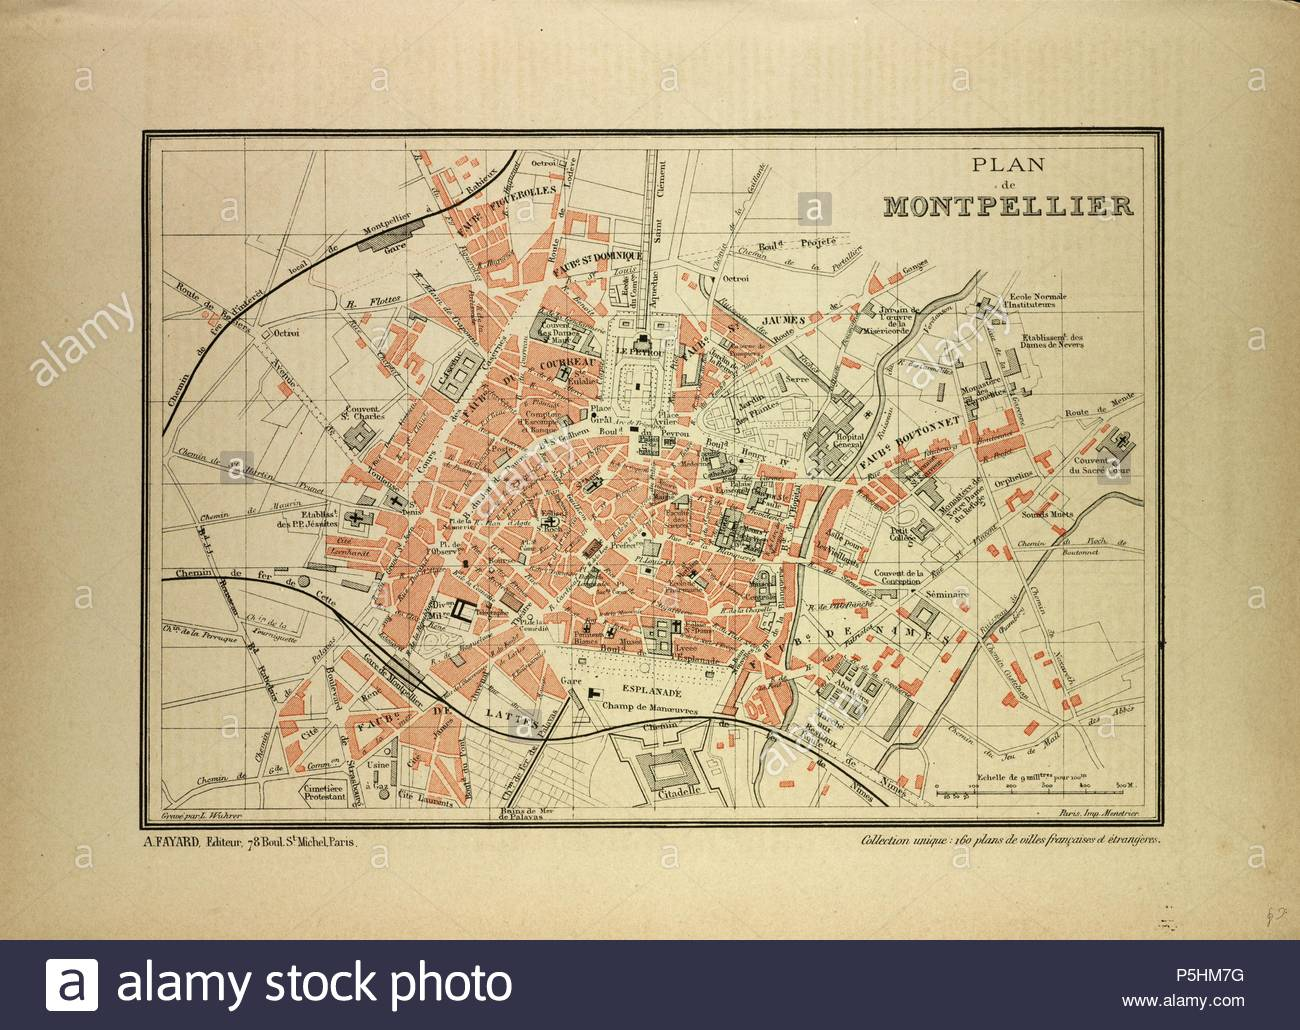 Montpellier Map Of France.Map Of Montpellier France Stock Photo 209986772 Alamy